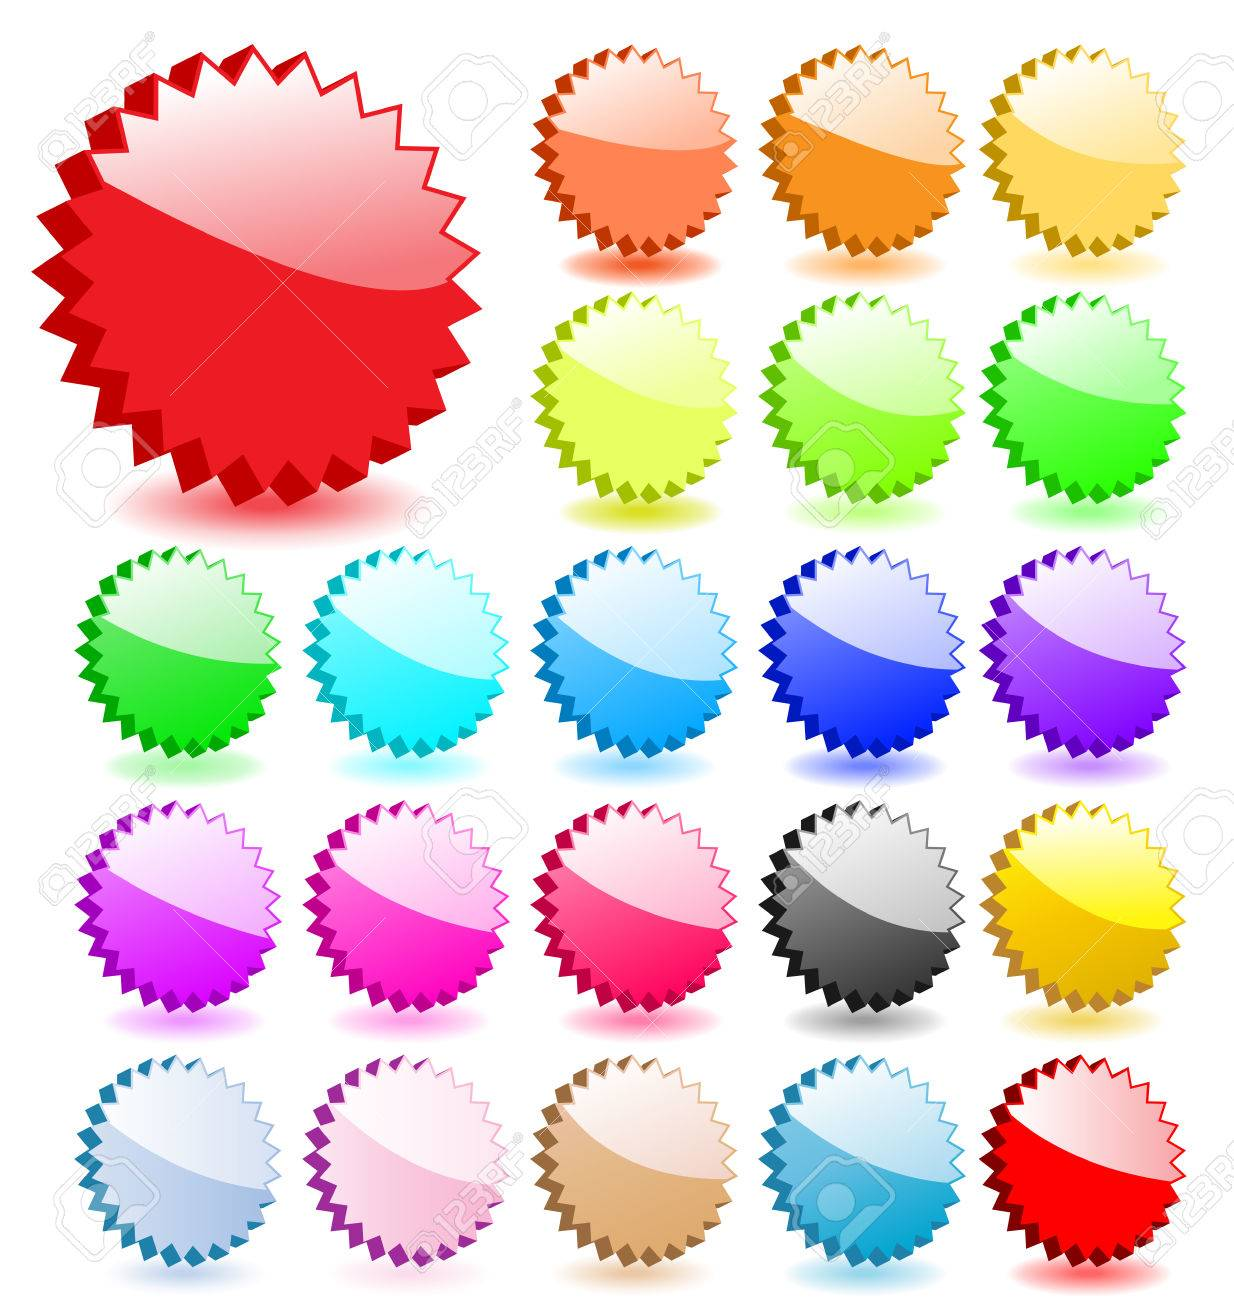 Set of 3D vector stars with shadows. Perfect for icons or adding text. Stock Vector - 4997569